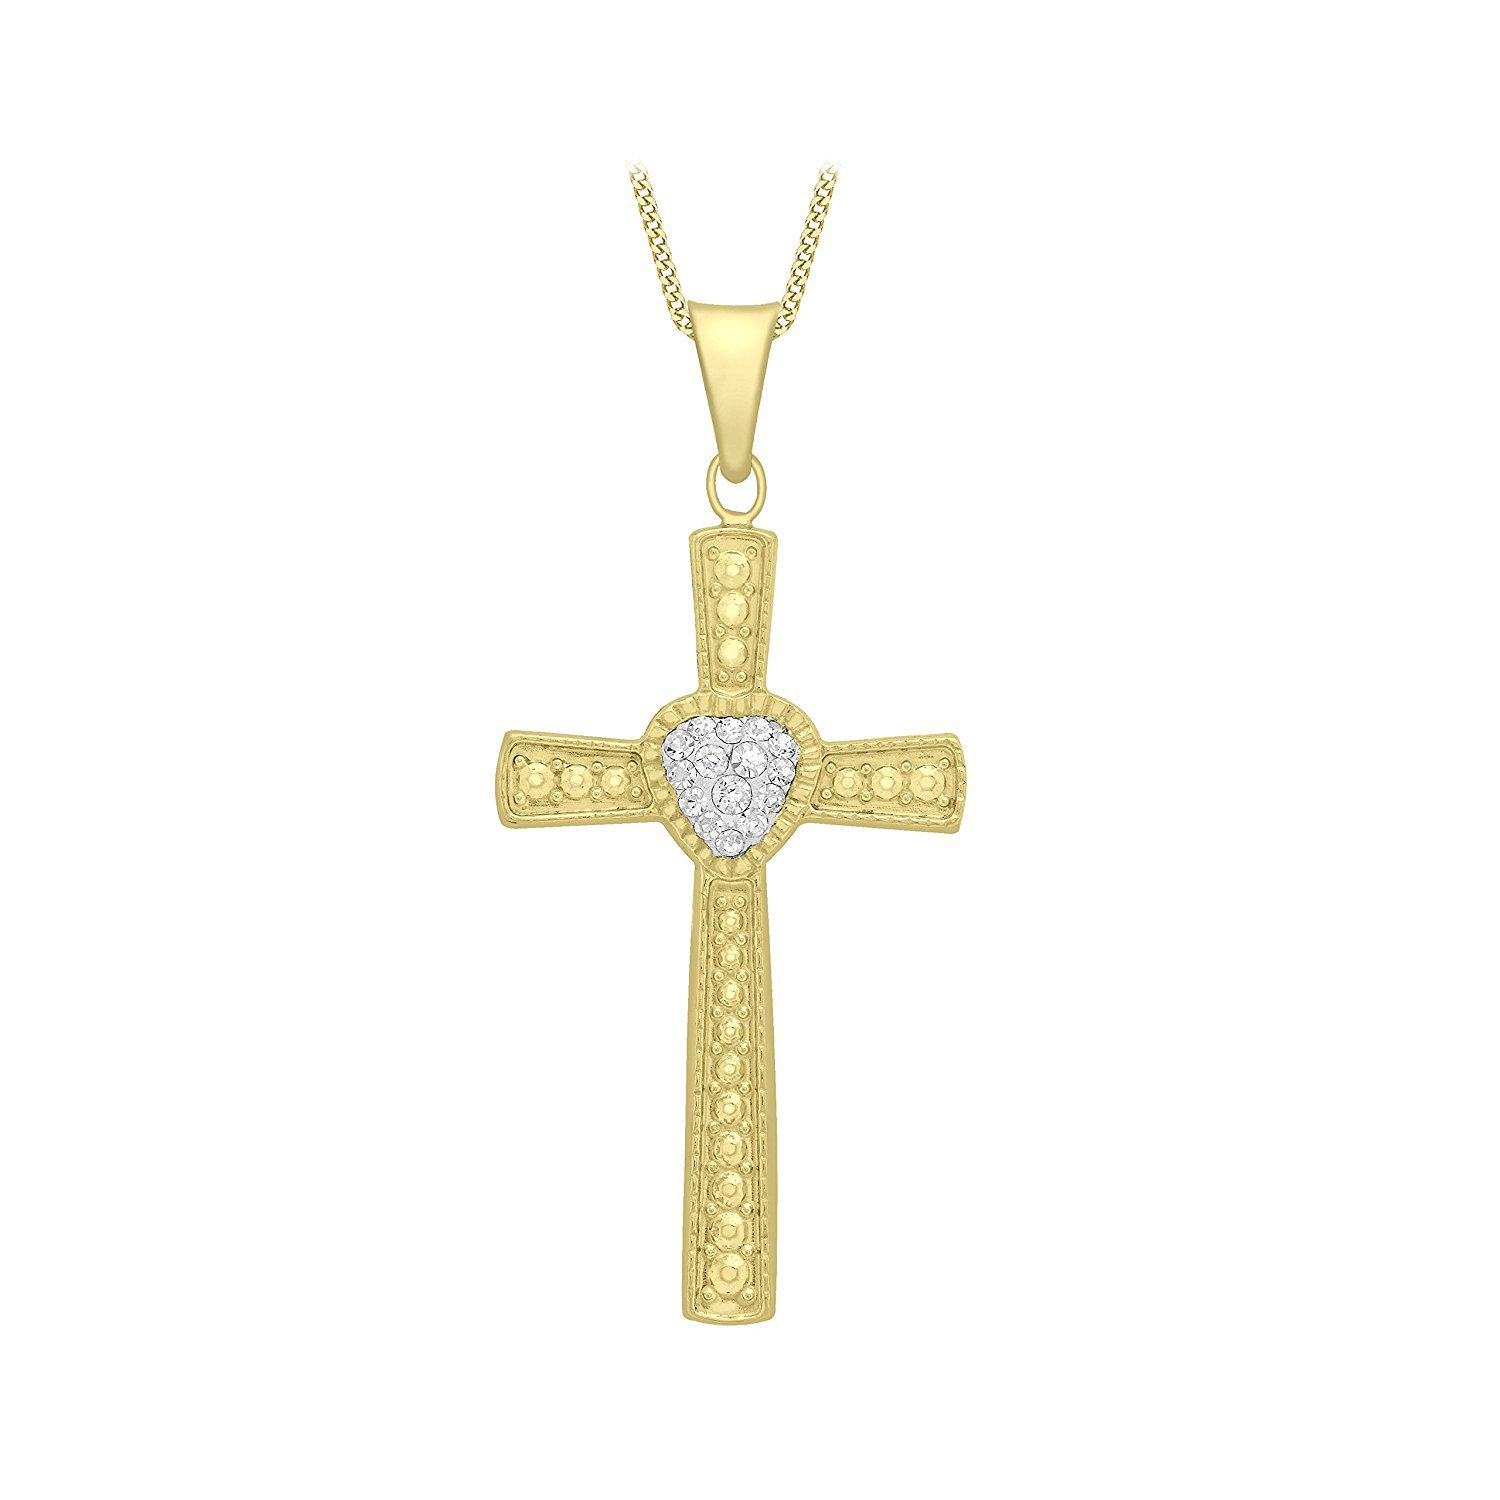 Carissima Gold 9 ct Yellow Gold Cubic Zirconia Cross Pendant on Curb Chain Necklace of 46 cm/18 inch cxdxxuIhP